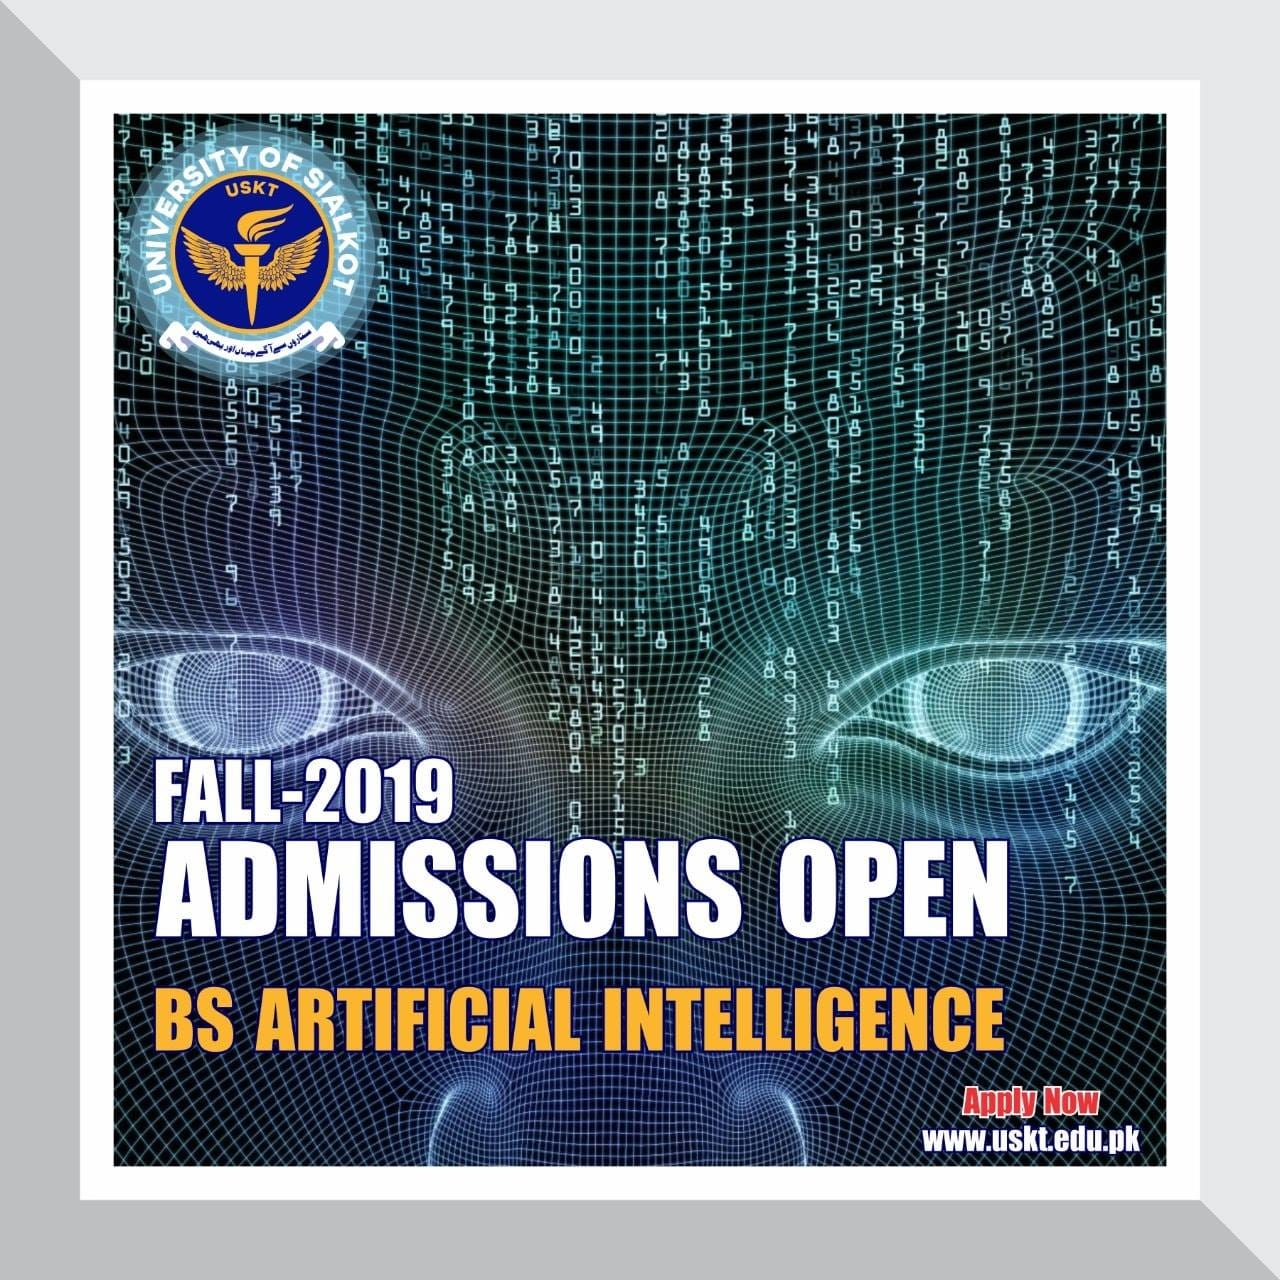 University of Sialkot Admission Fall 2019 BS Artificial Intelligence